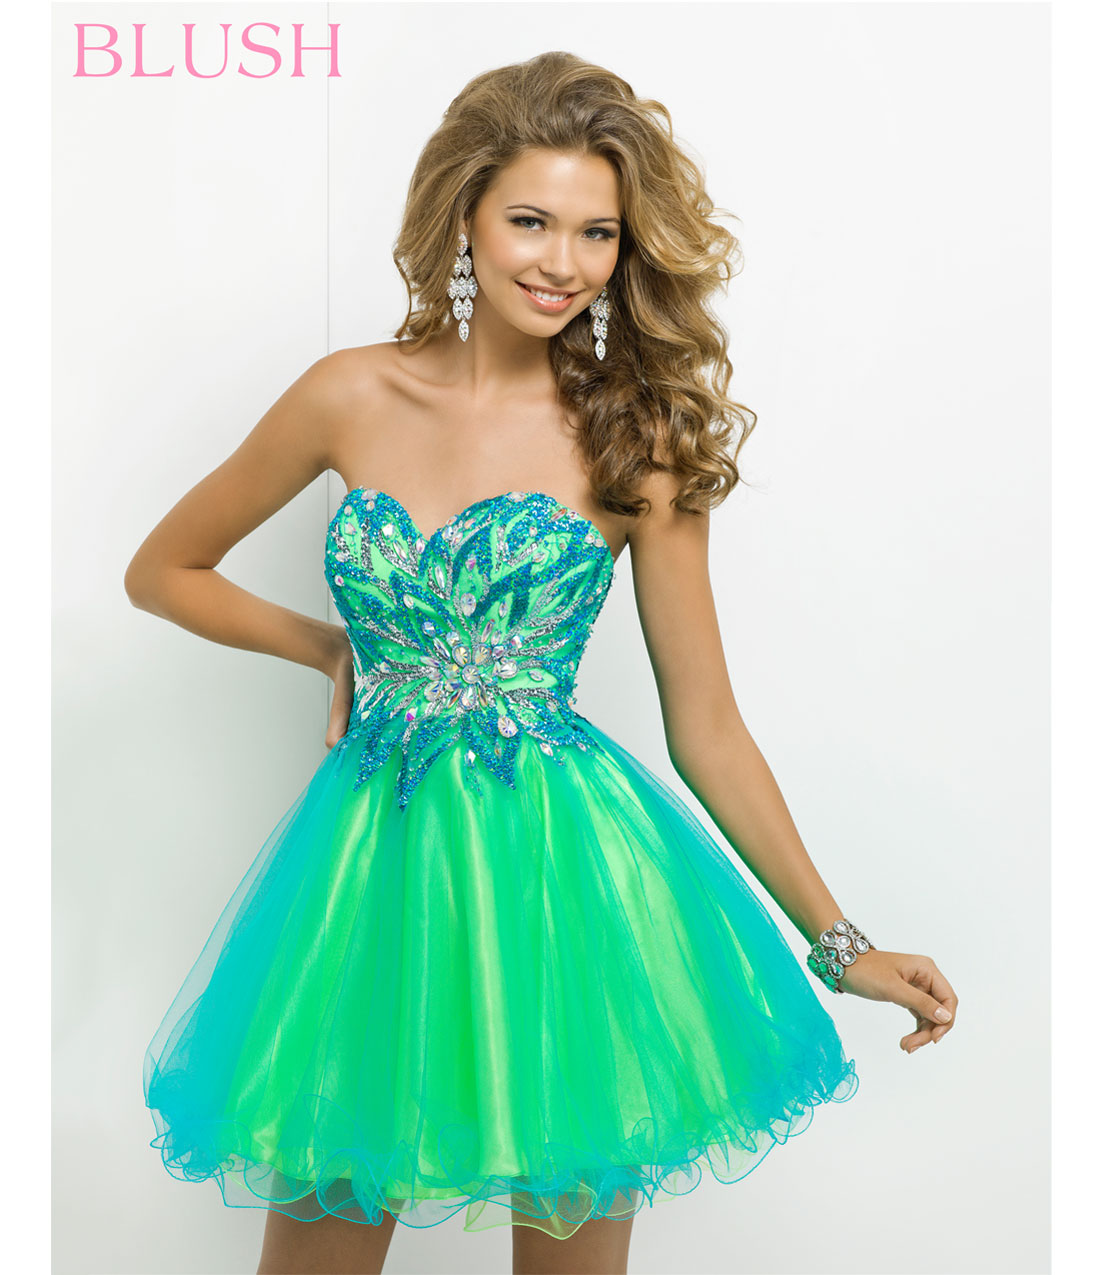 Blush 2014 Prom Dresses - Turquoise & Lime Strapless Short Prom ...